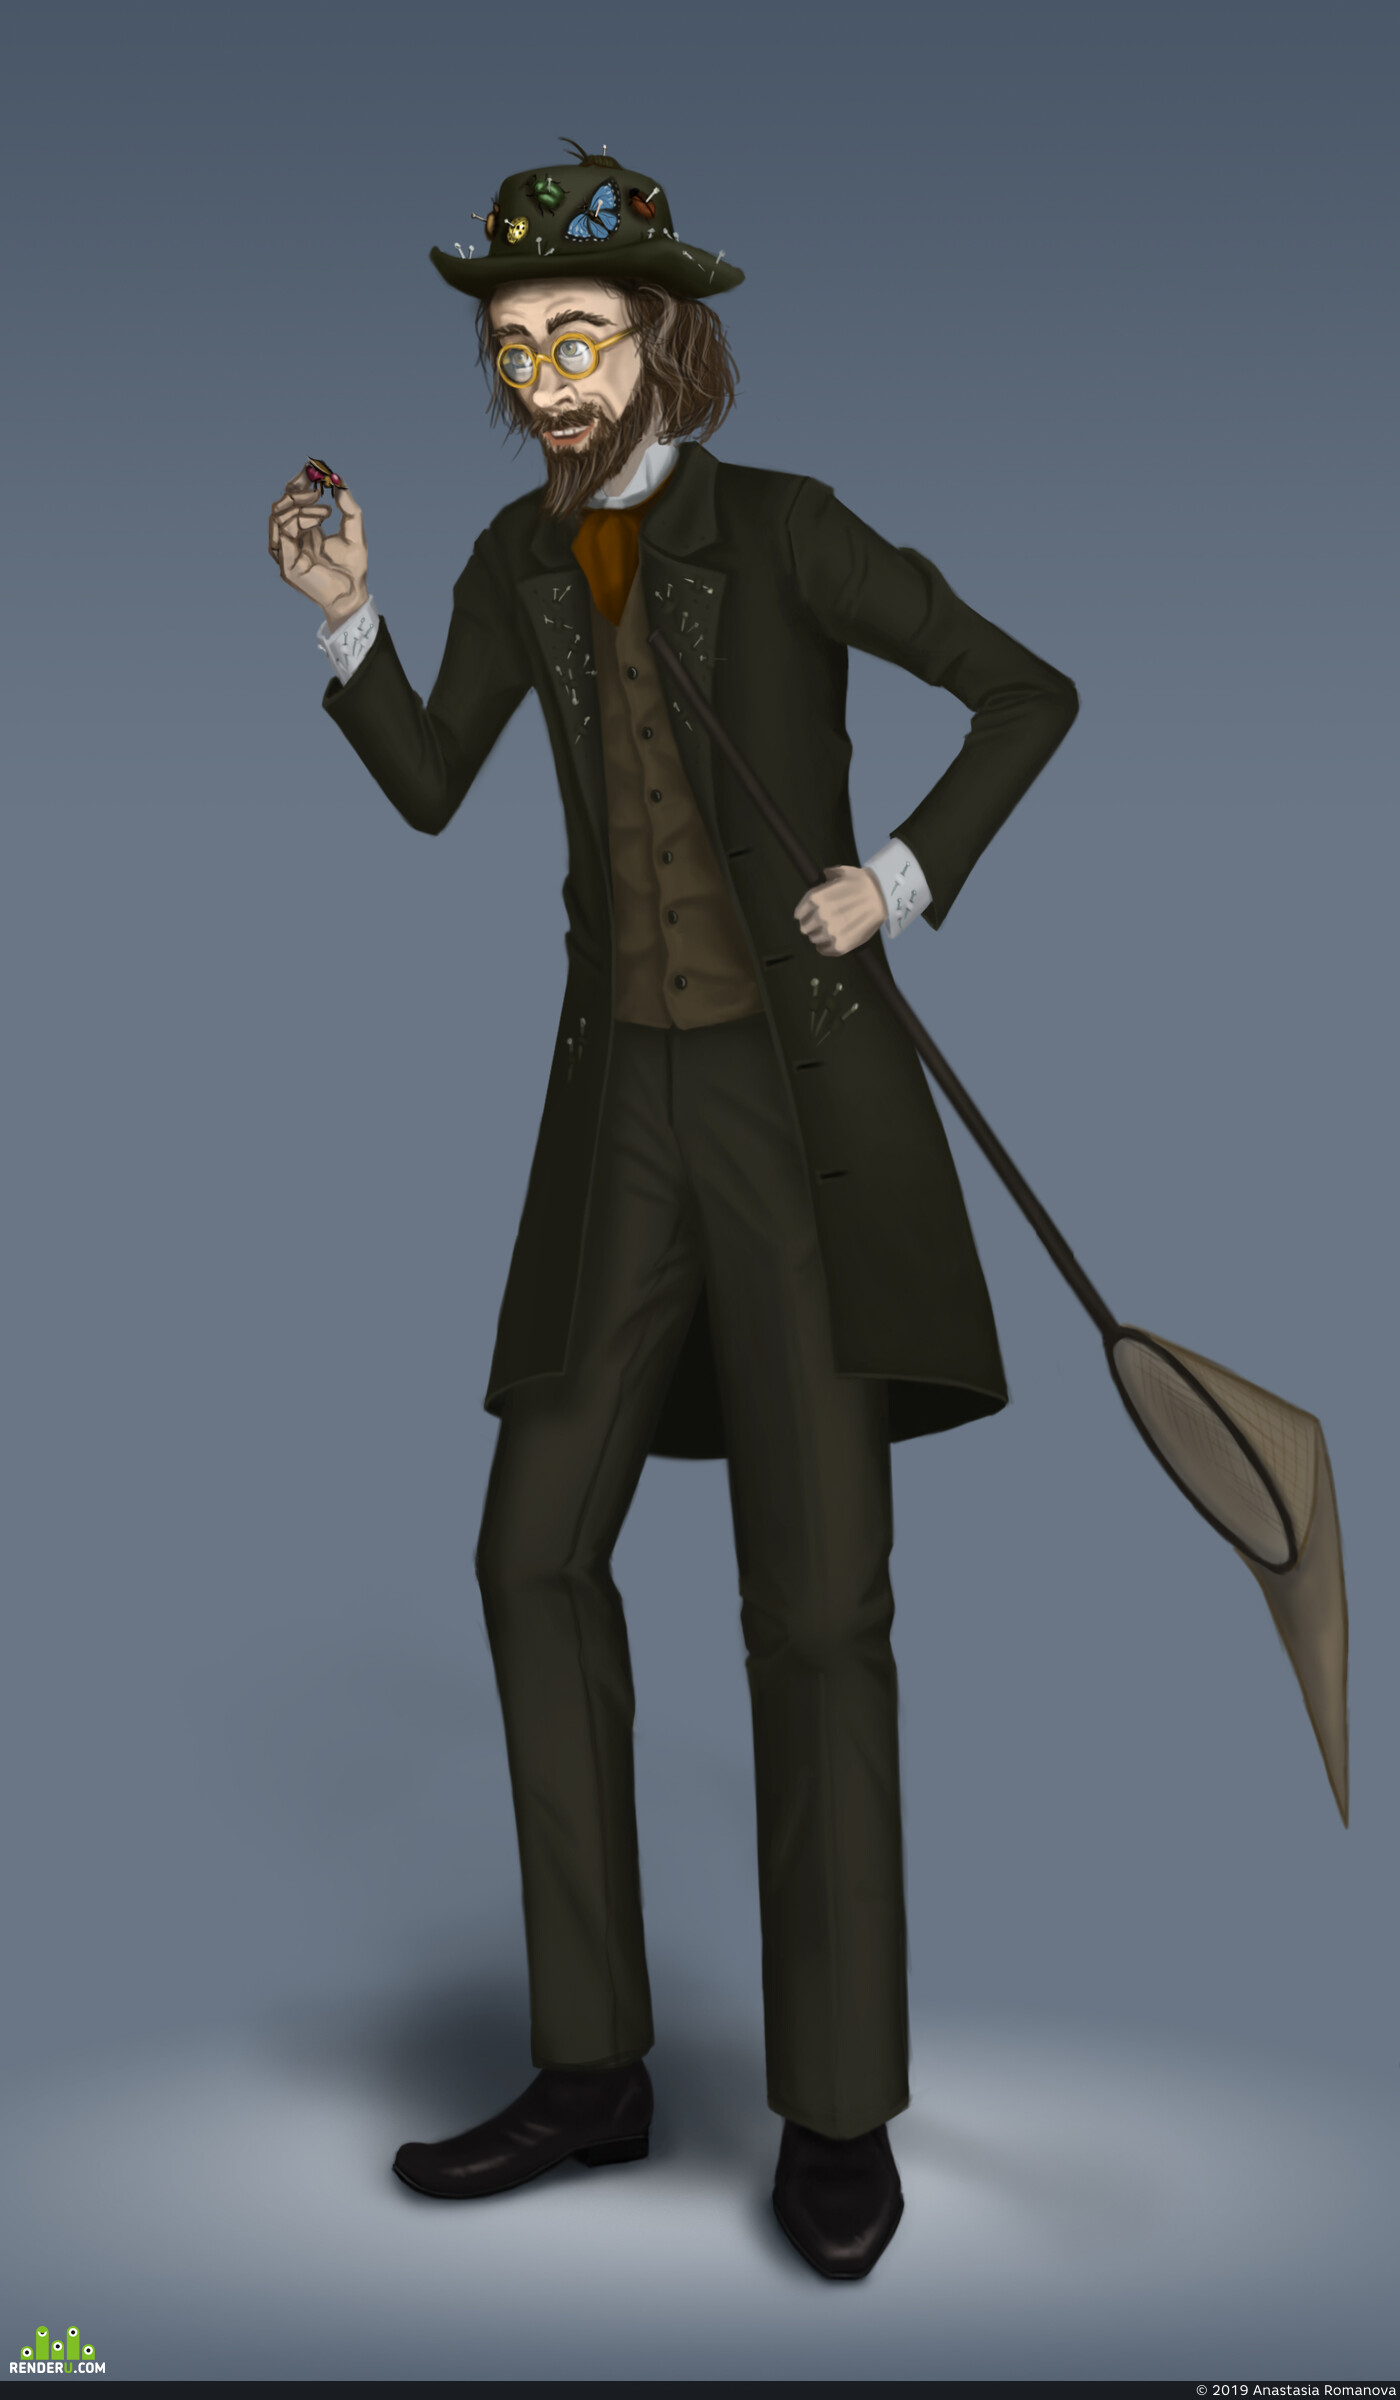 Digital 2D, Characters, Concept Art, fanart, character design, scientist, scattered, 19th century, Jules Verne